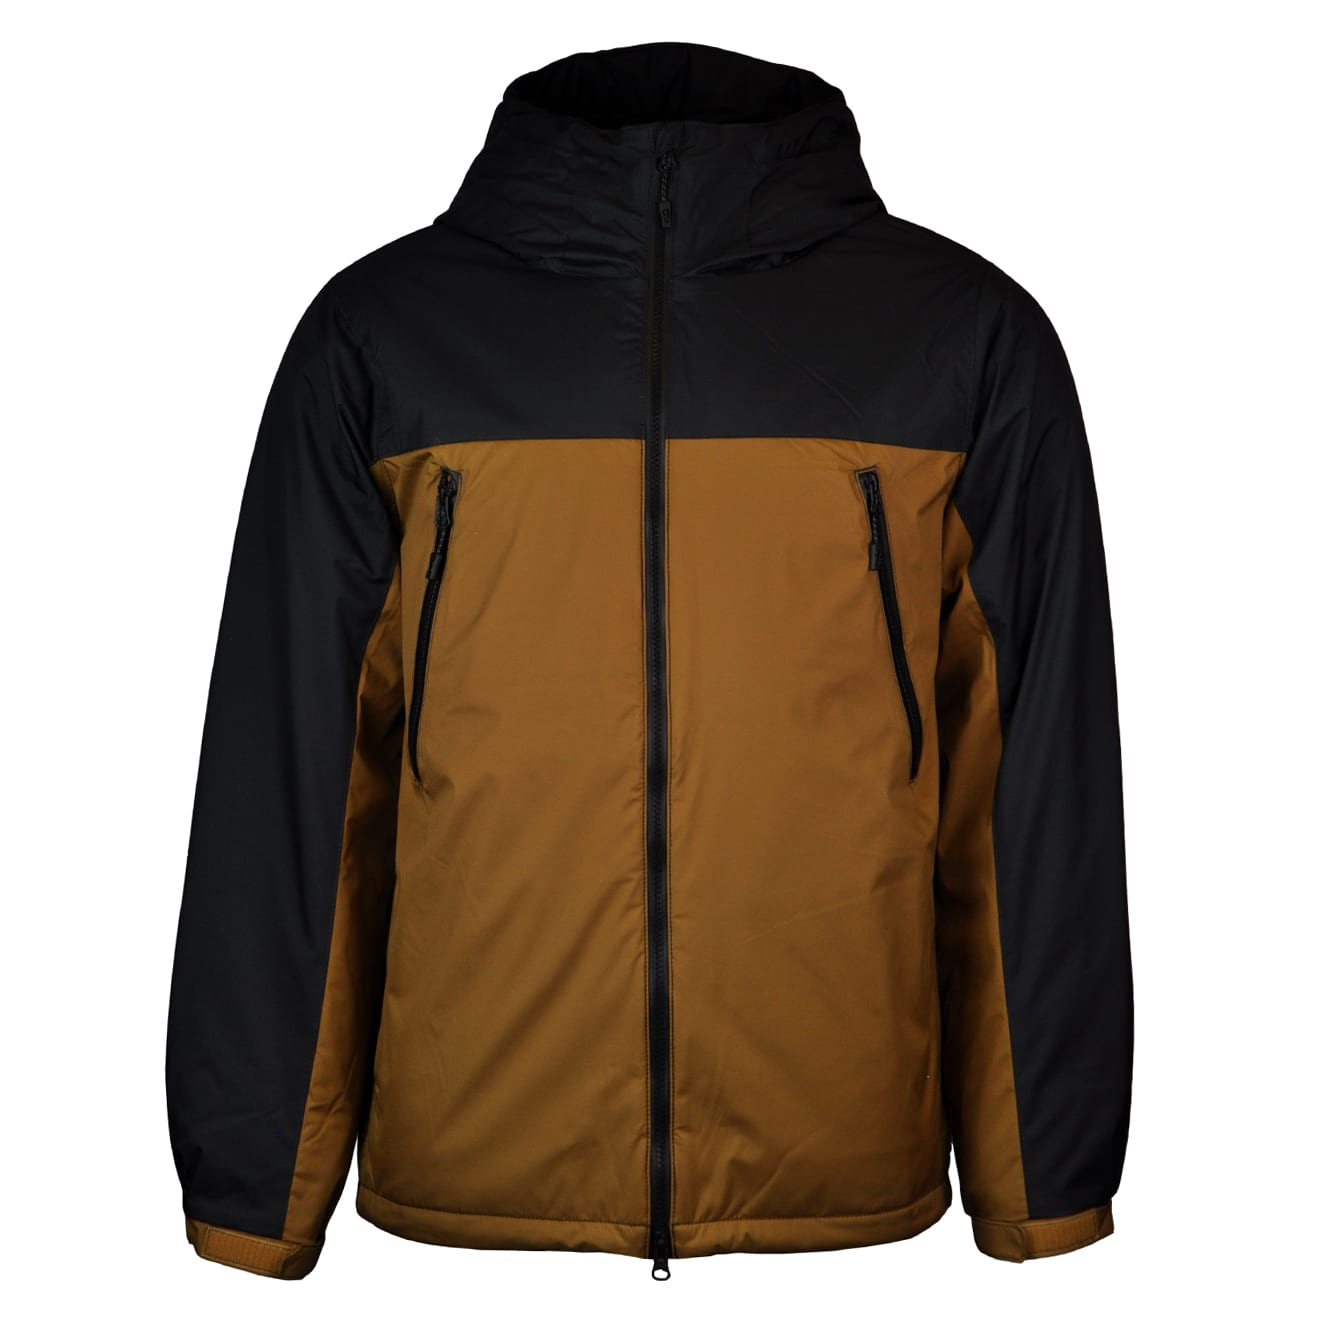 Manastash 2.5 layer P100 jacket black